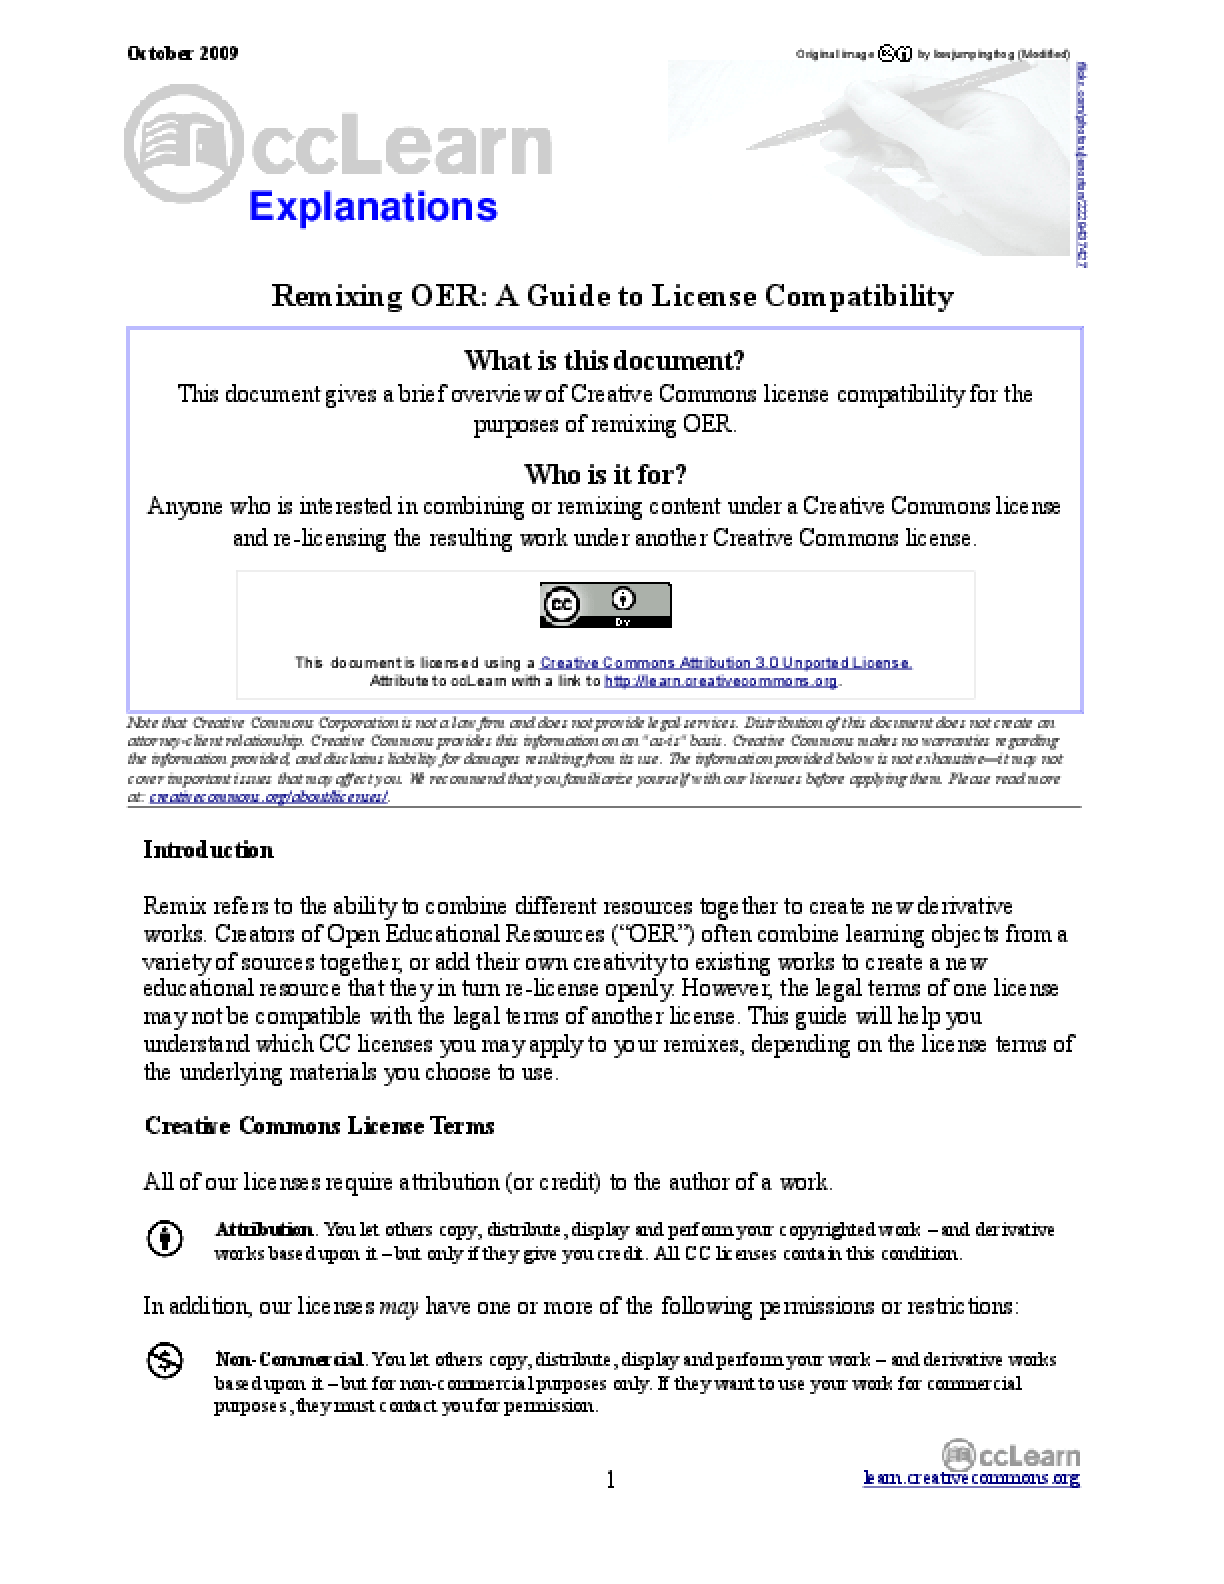 Remixing OER: A Guide to License Compatibility